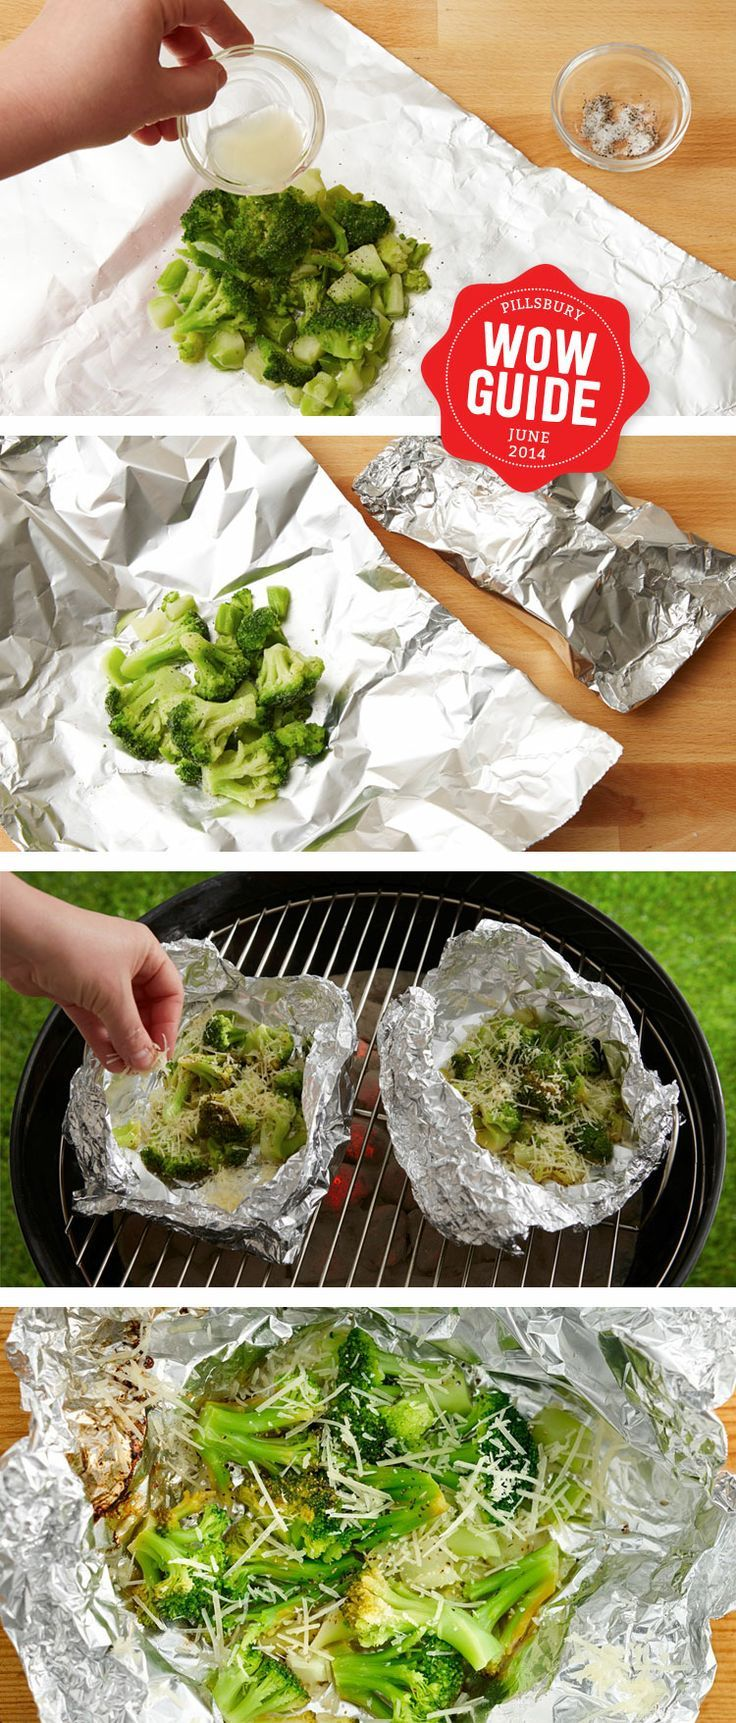 Broccoli made on the grill with lemon and parm - you'll never have anything more delicious!